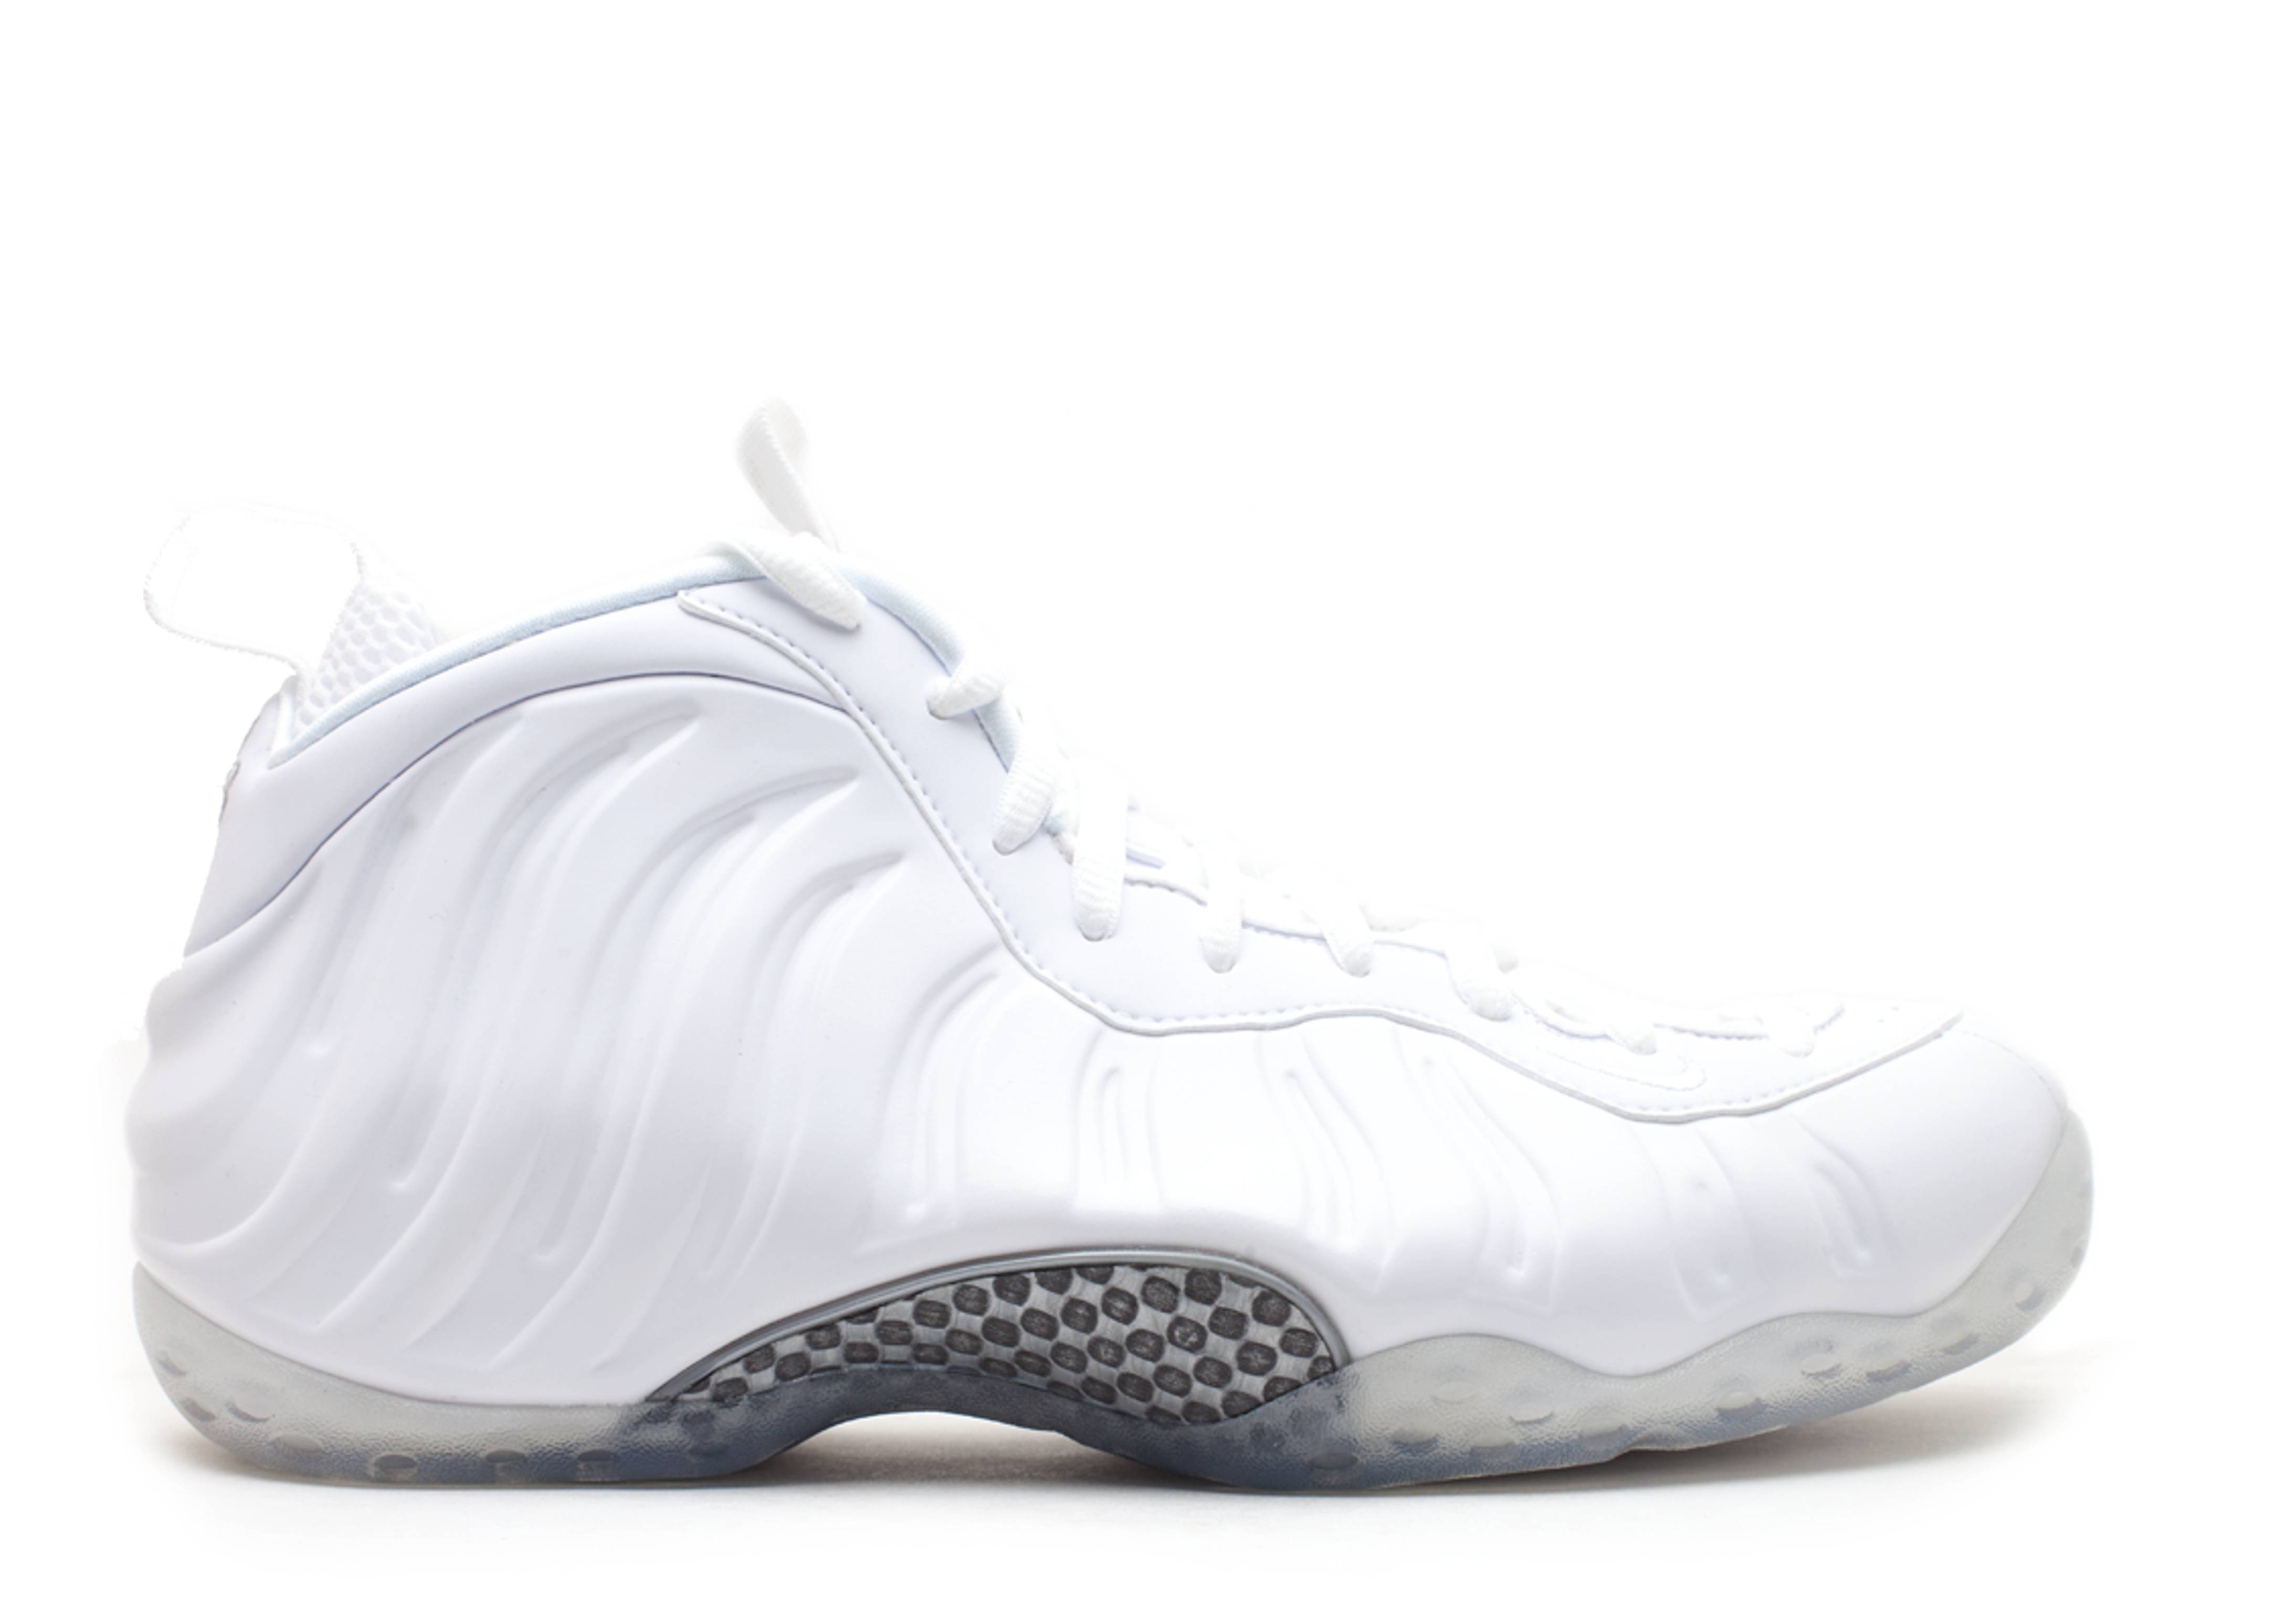 2013 Nike Air Foamposite One Whiteout Size 13. 314996-100 Jordan Penny